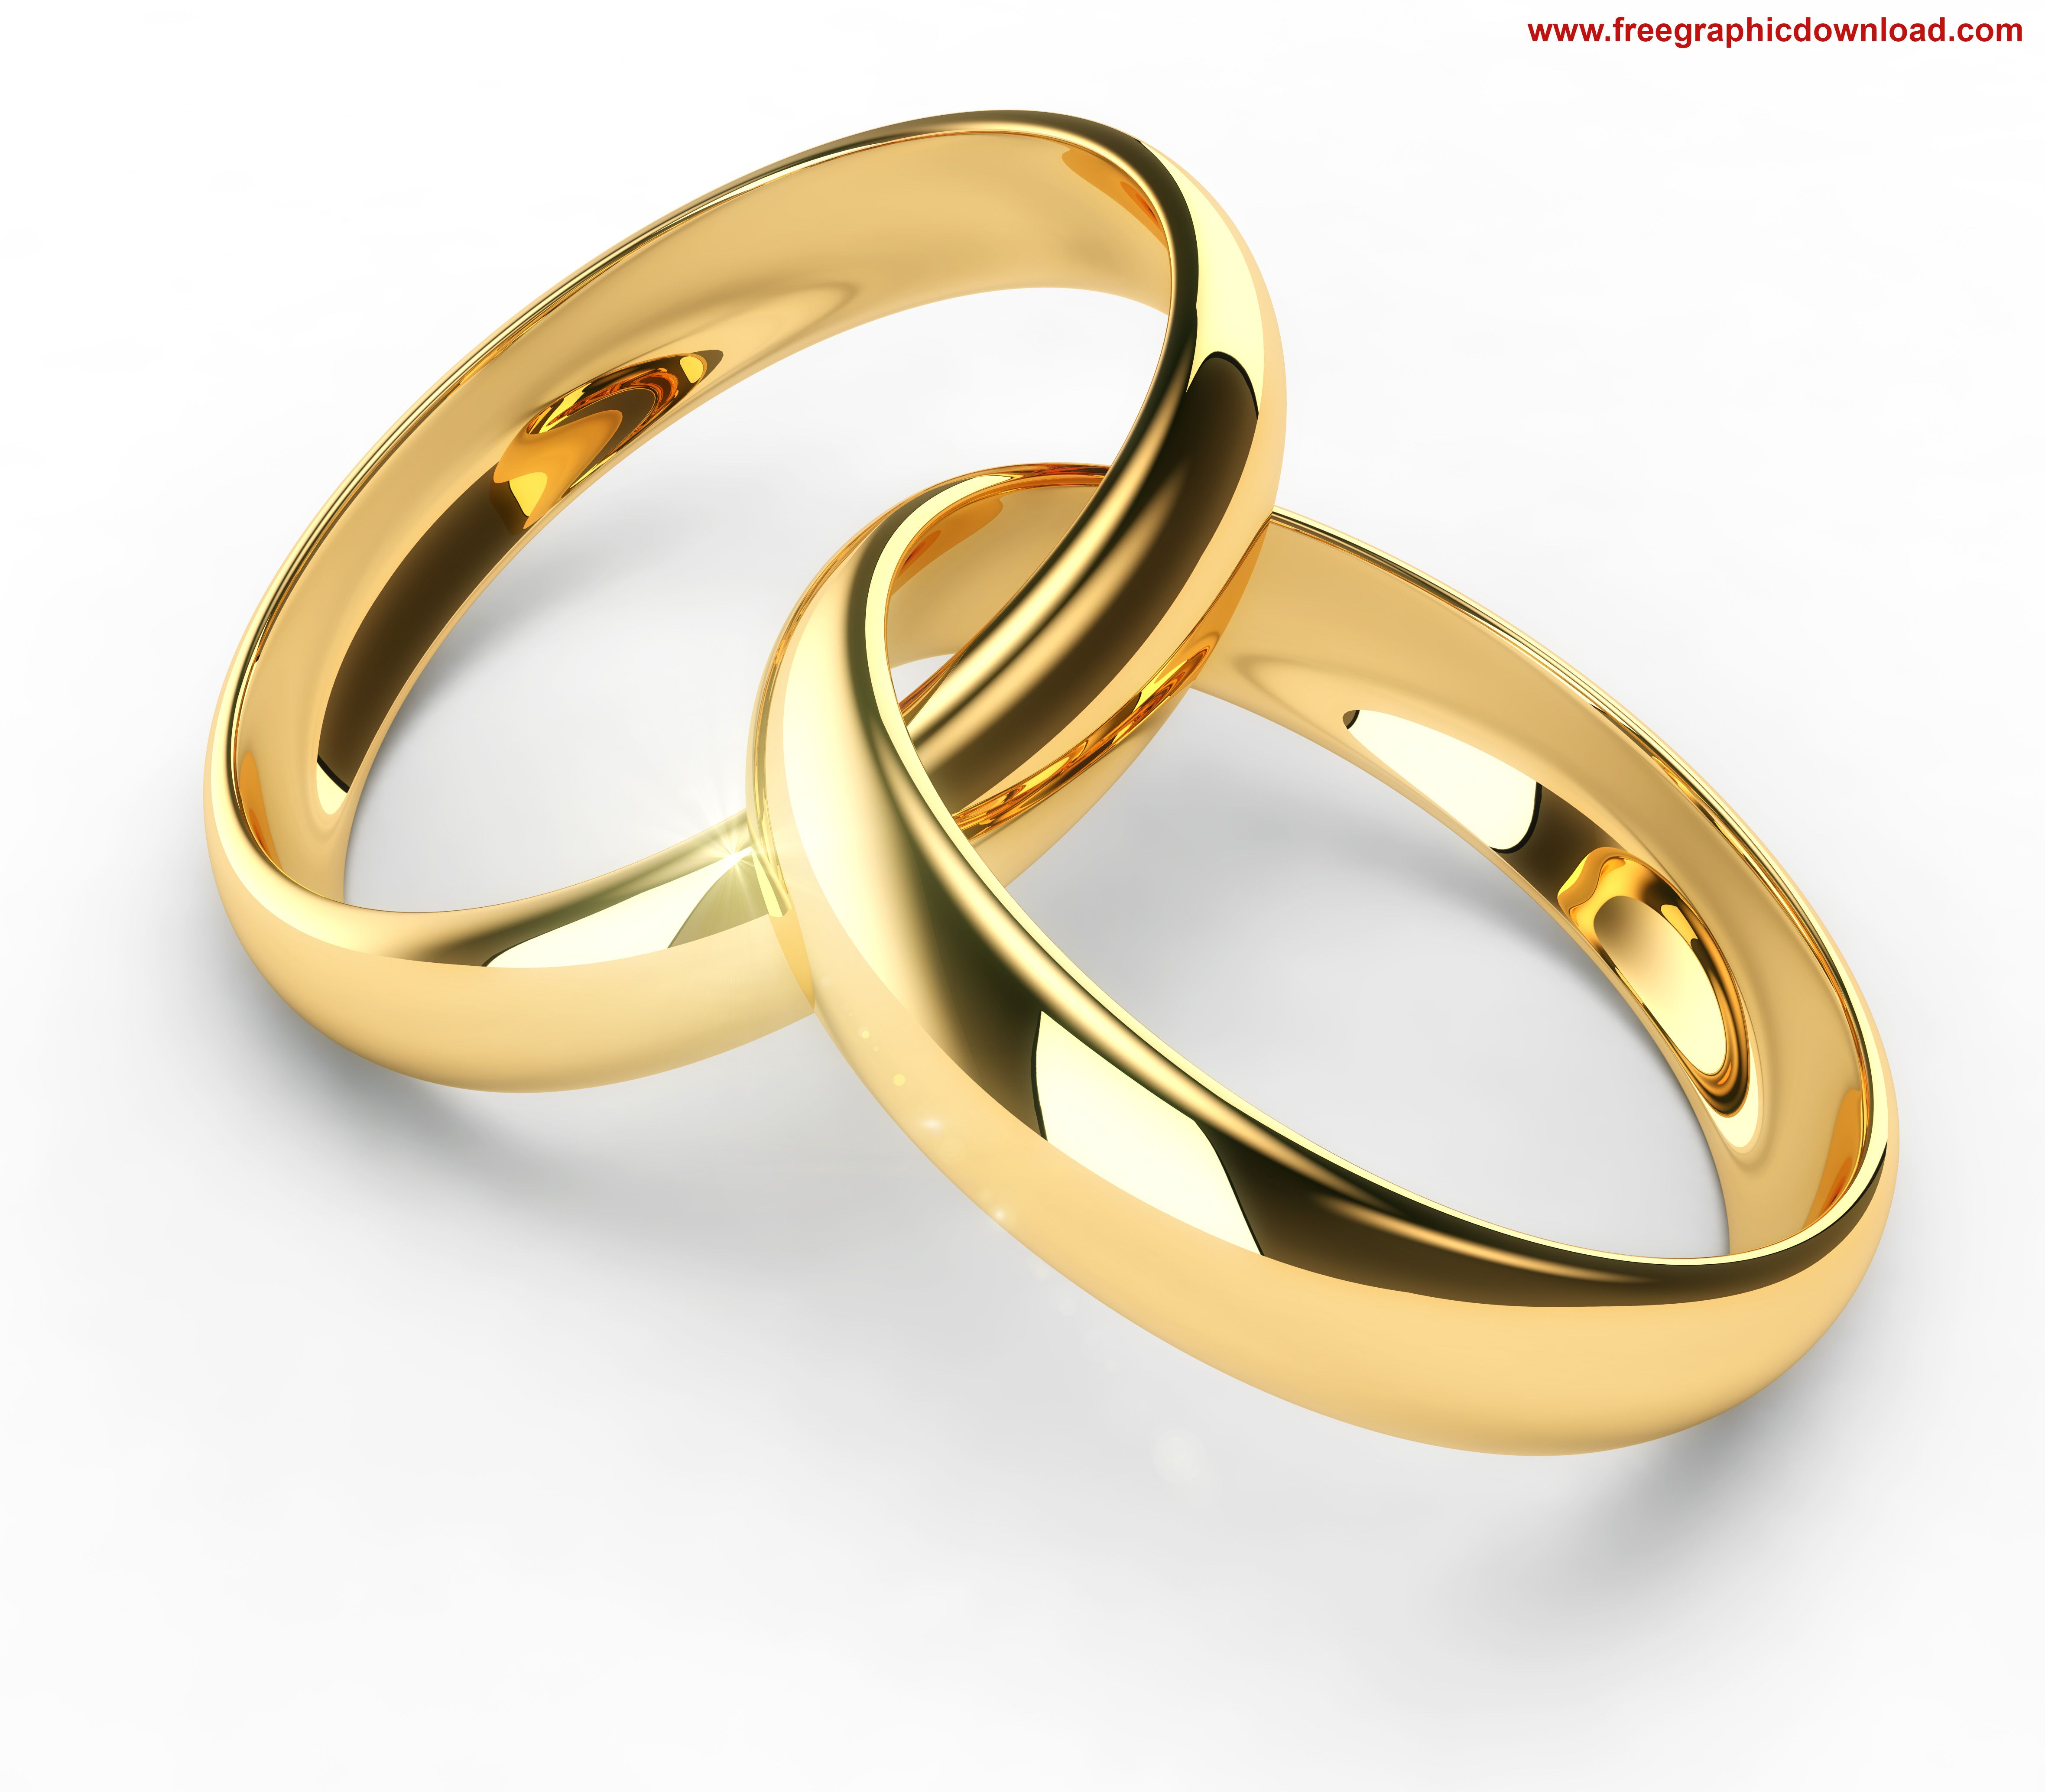 pictures of wedding rings Gold wedding rings